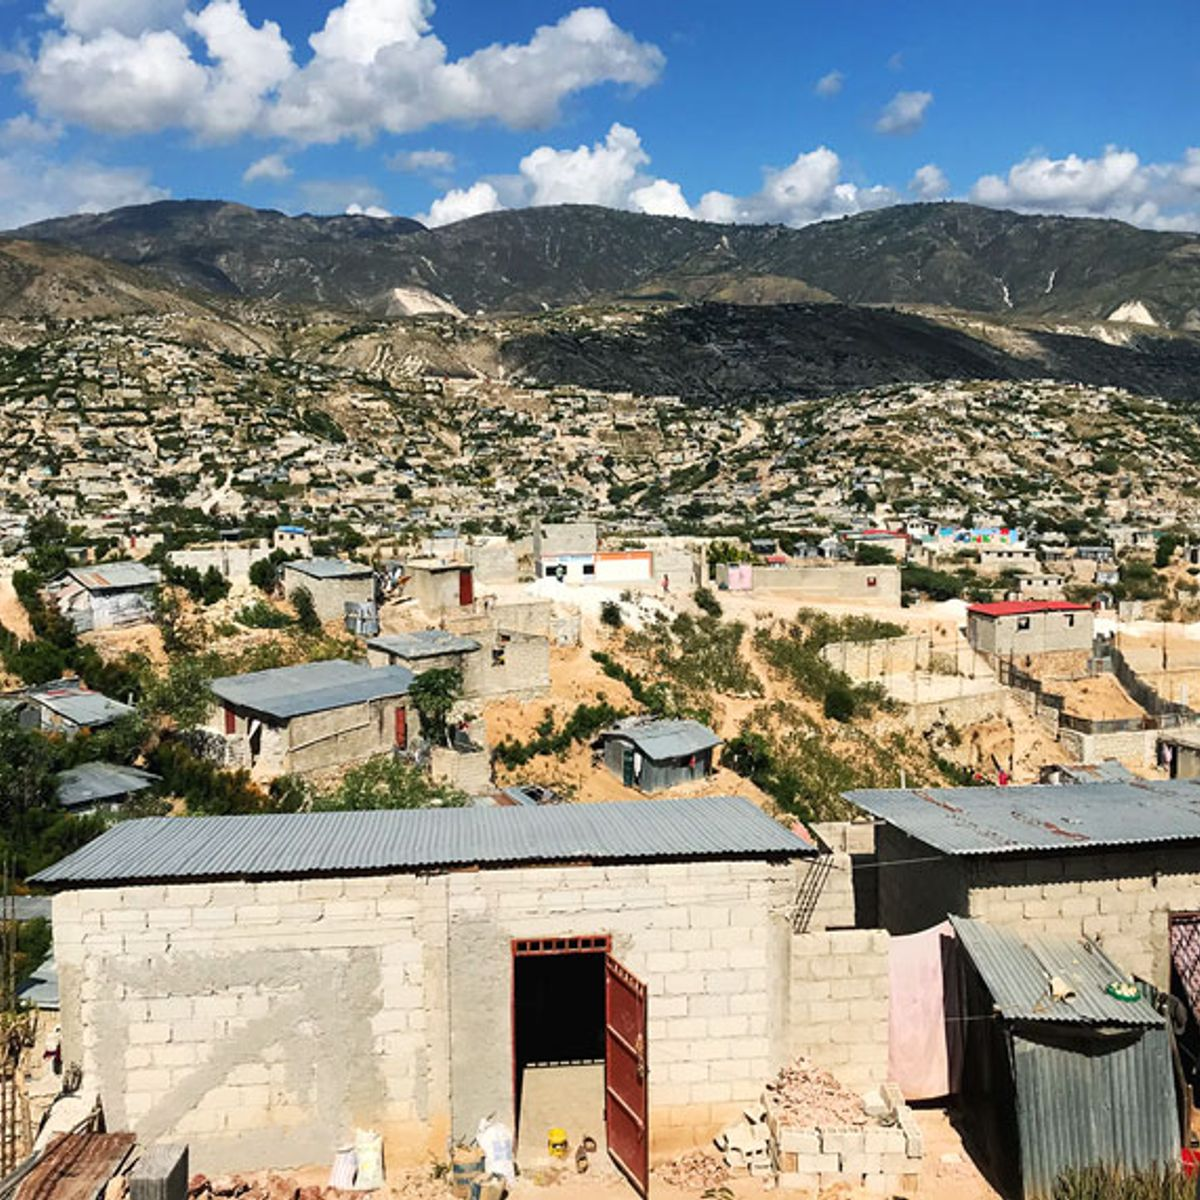 Port-au-Prince, city of survivors: Voices from Haiti, after the devastating 2010 earthquake